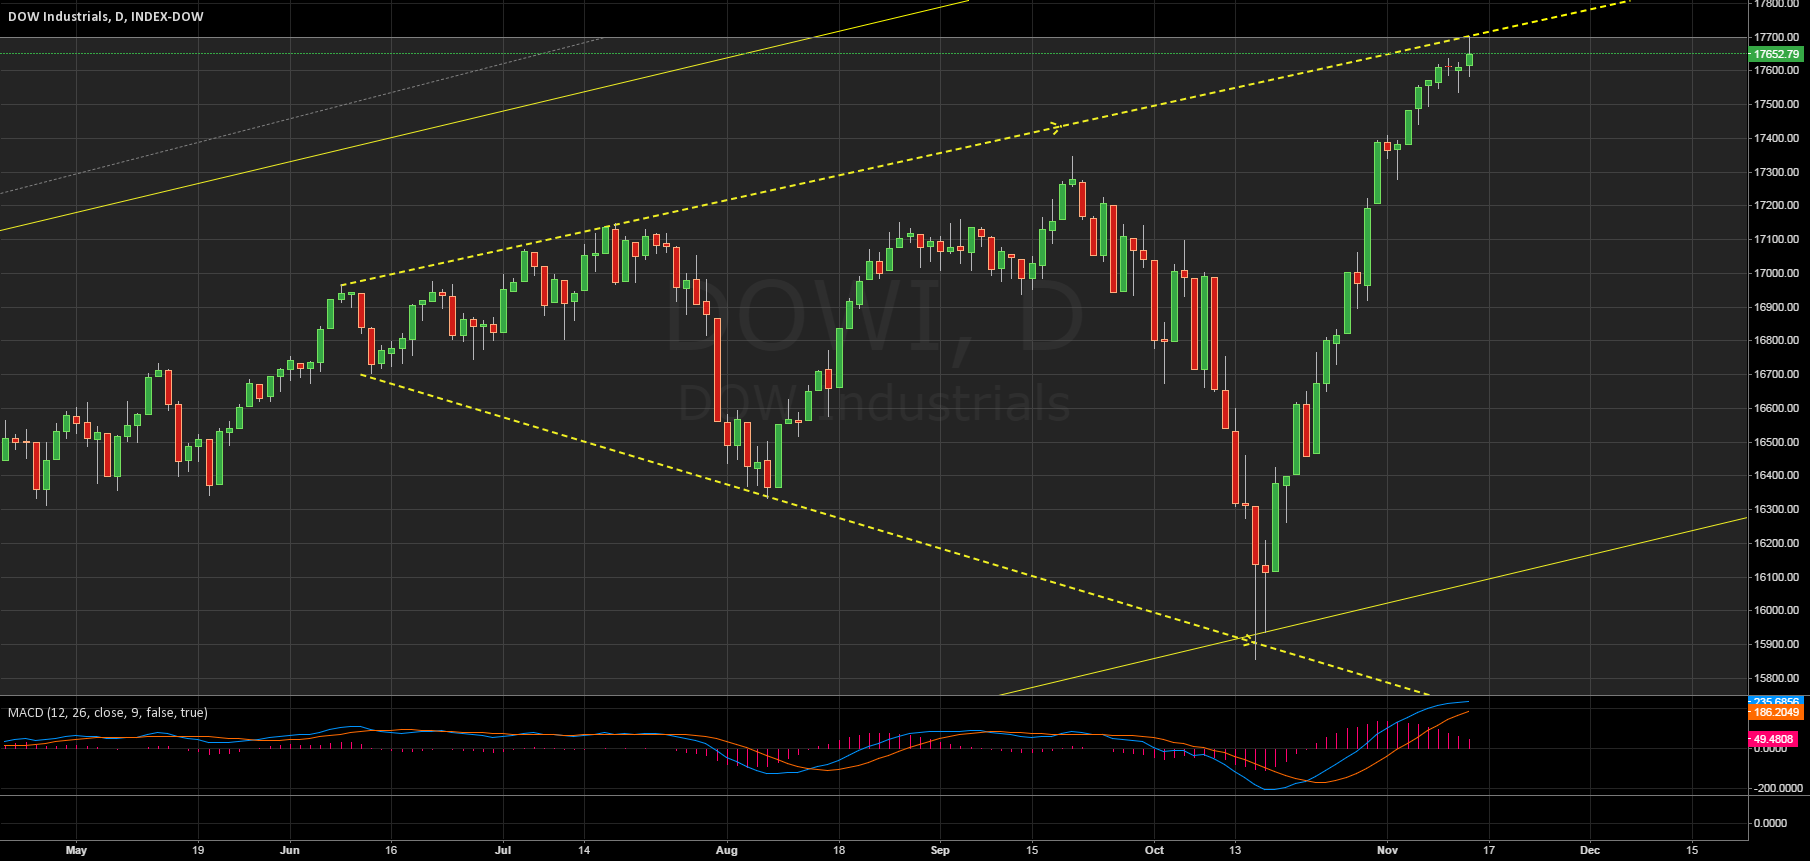 Bearish Megaphone on $DJIA $DOW Cash EOD Index